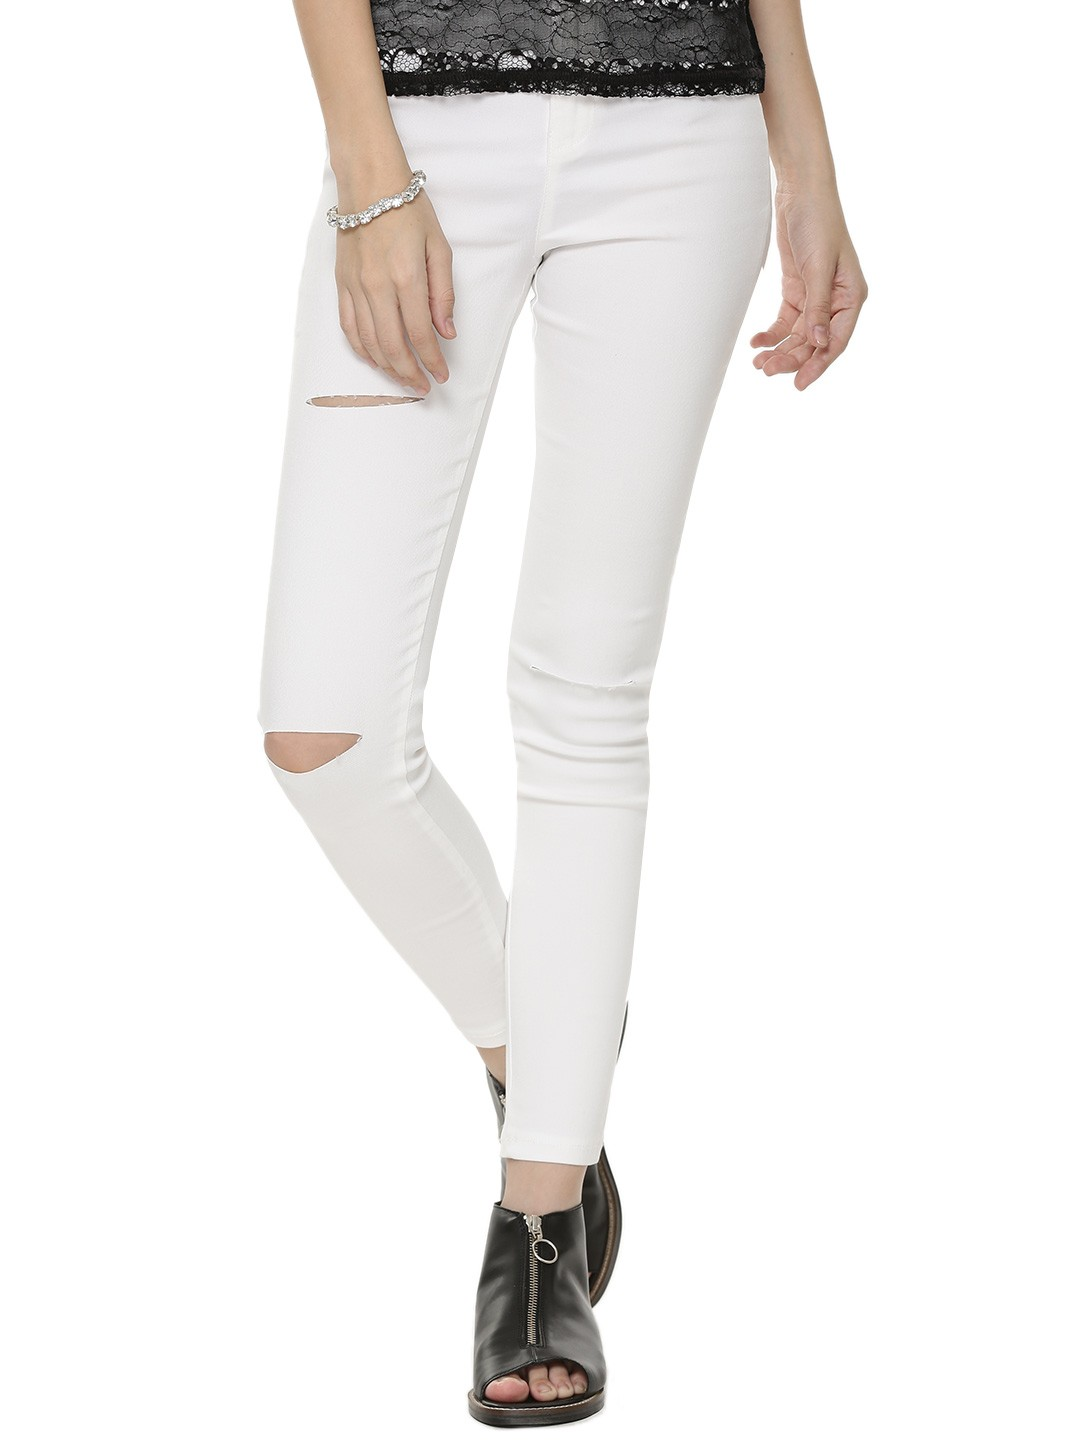 Buy MOMOKROM Ripped Knee Skinny Jeans For Women - Women's White ...